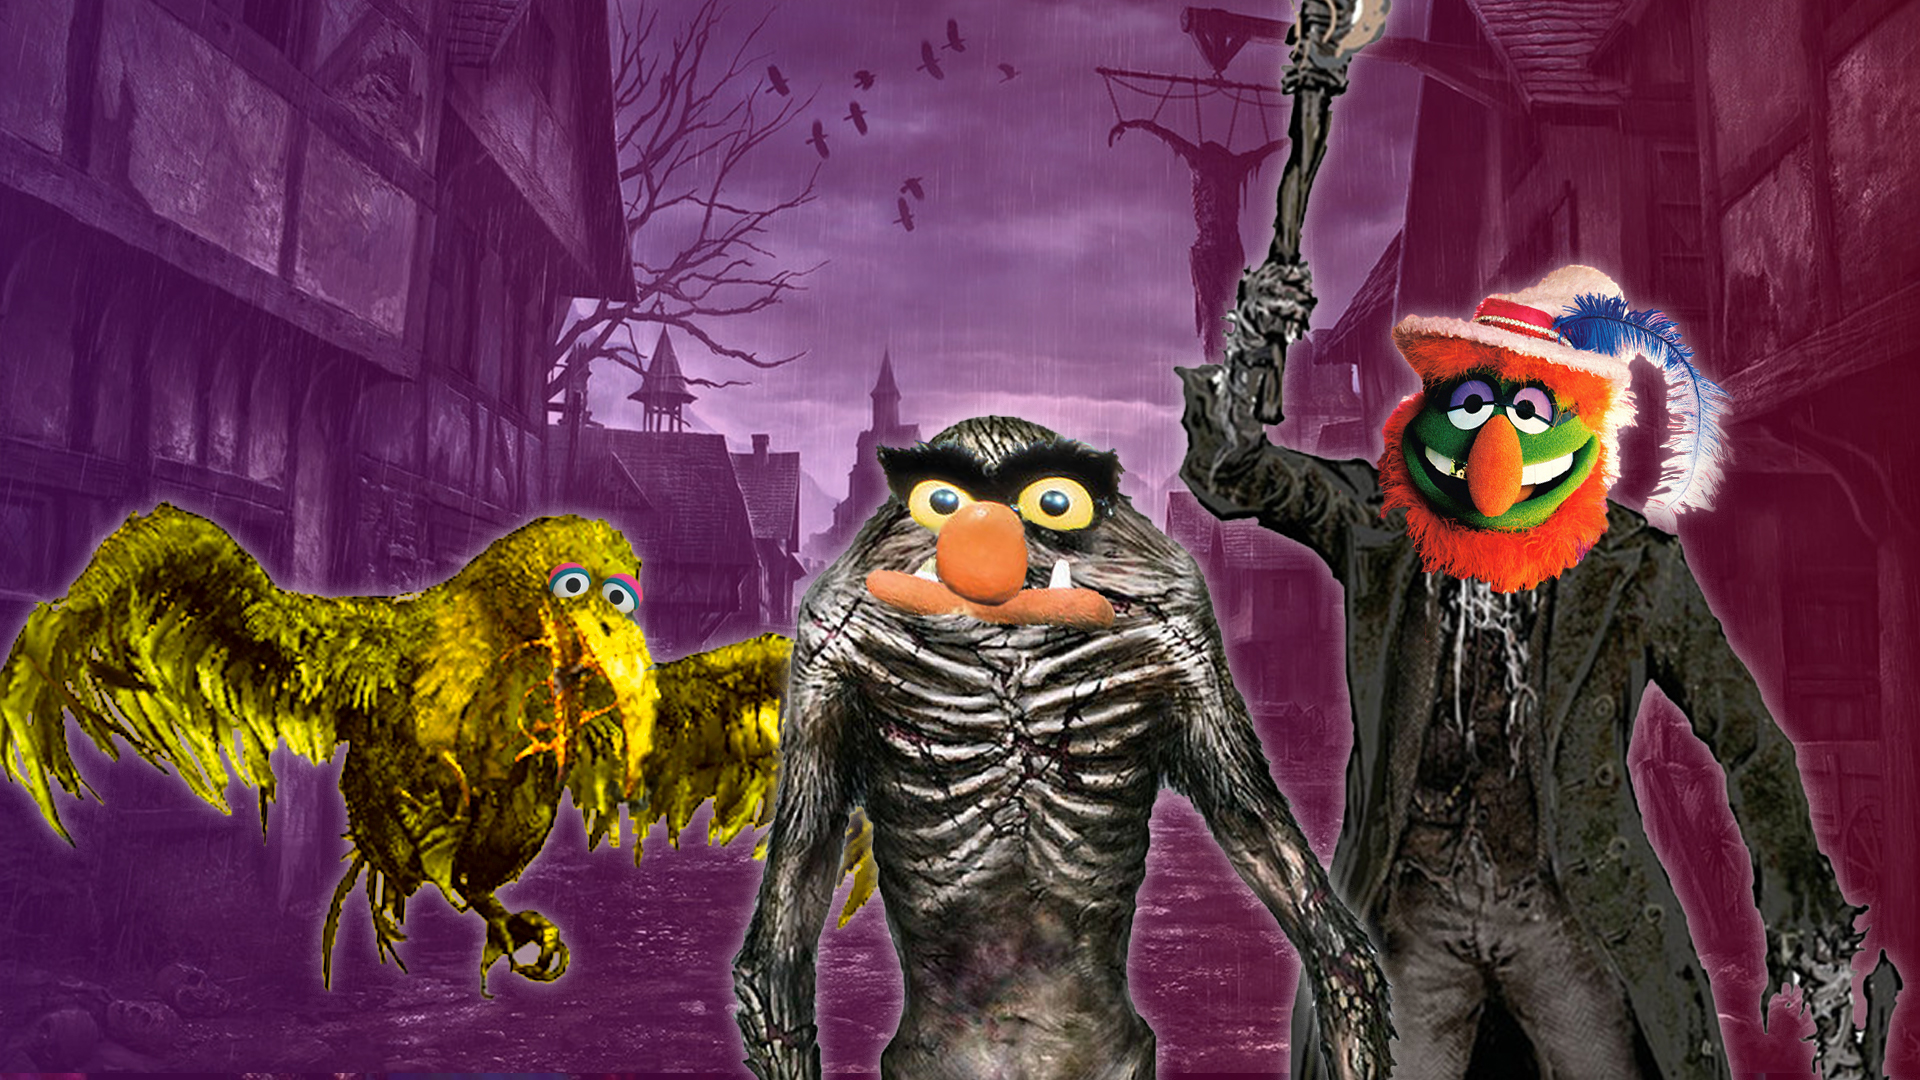 bloodborne monsters as muppets